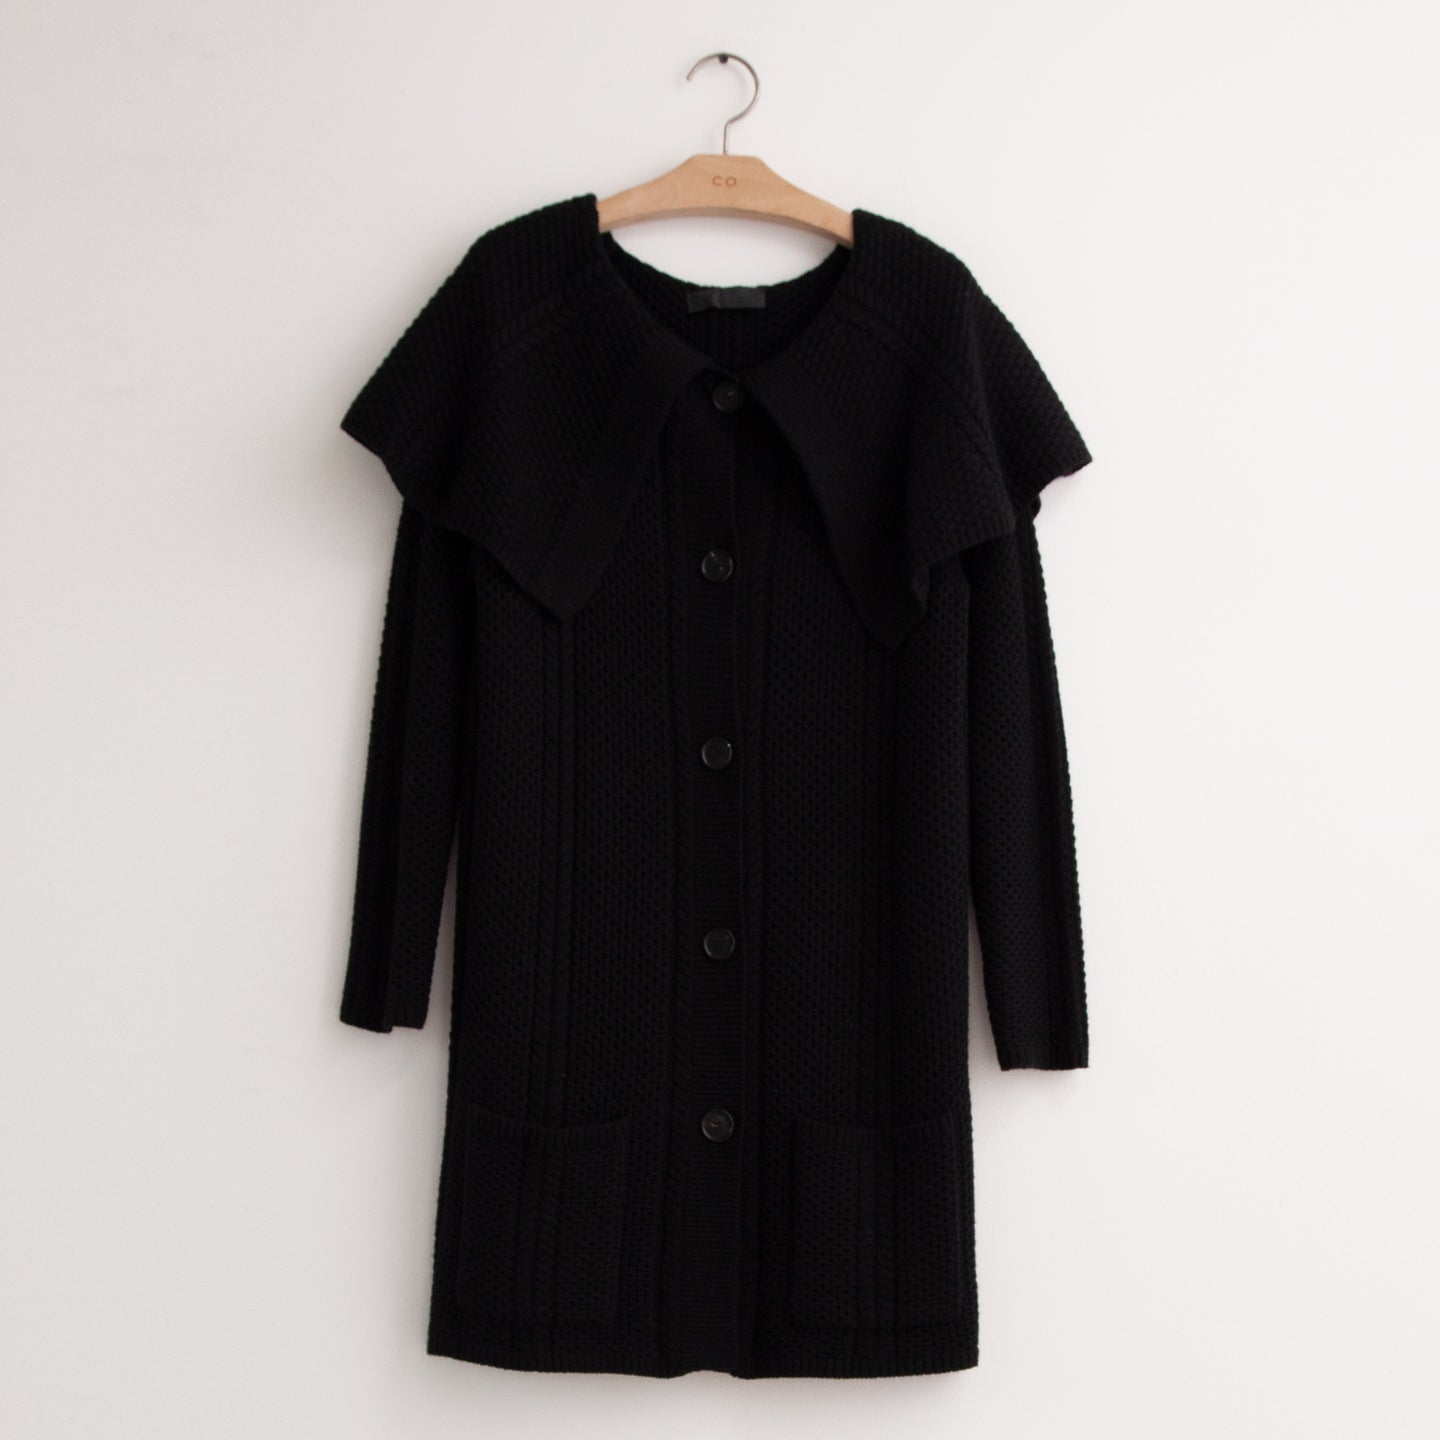 CO - Oversized cable knit cardigan with shawl collar in black wool